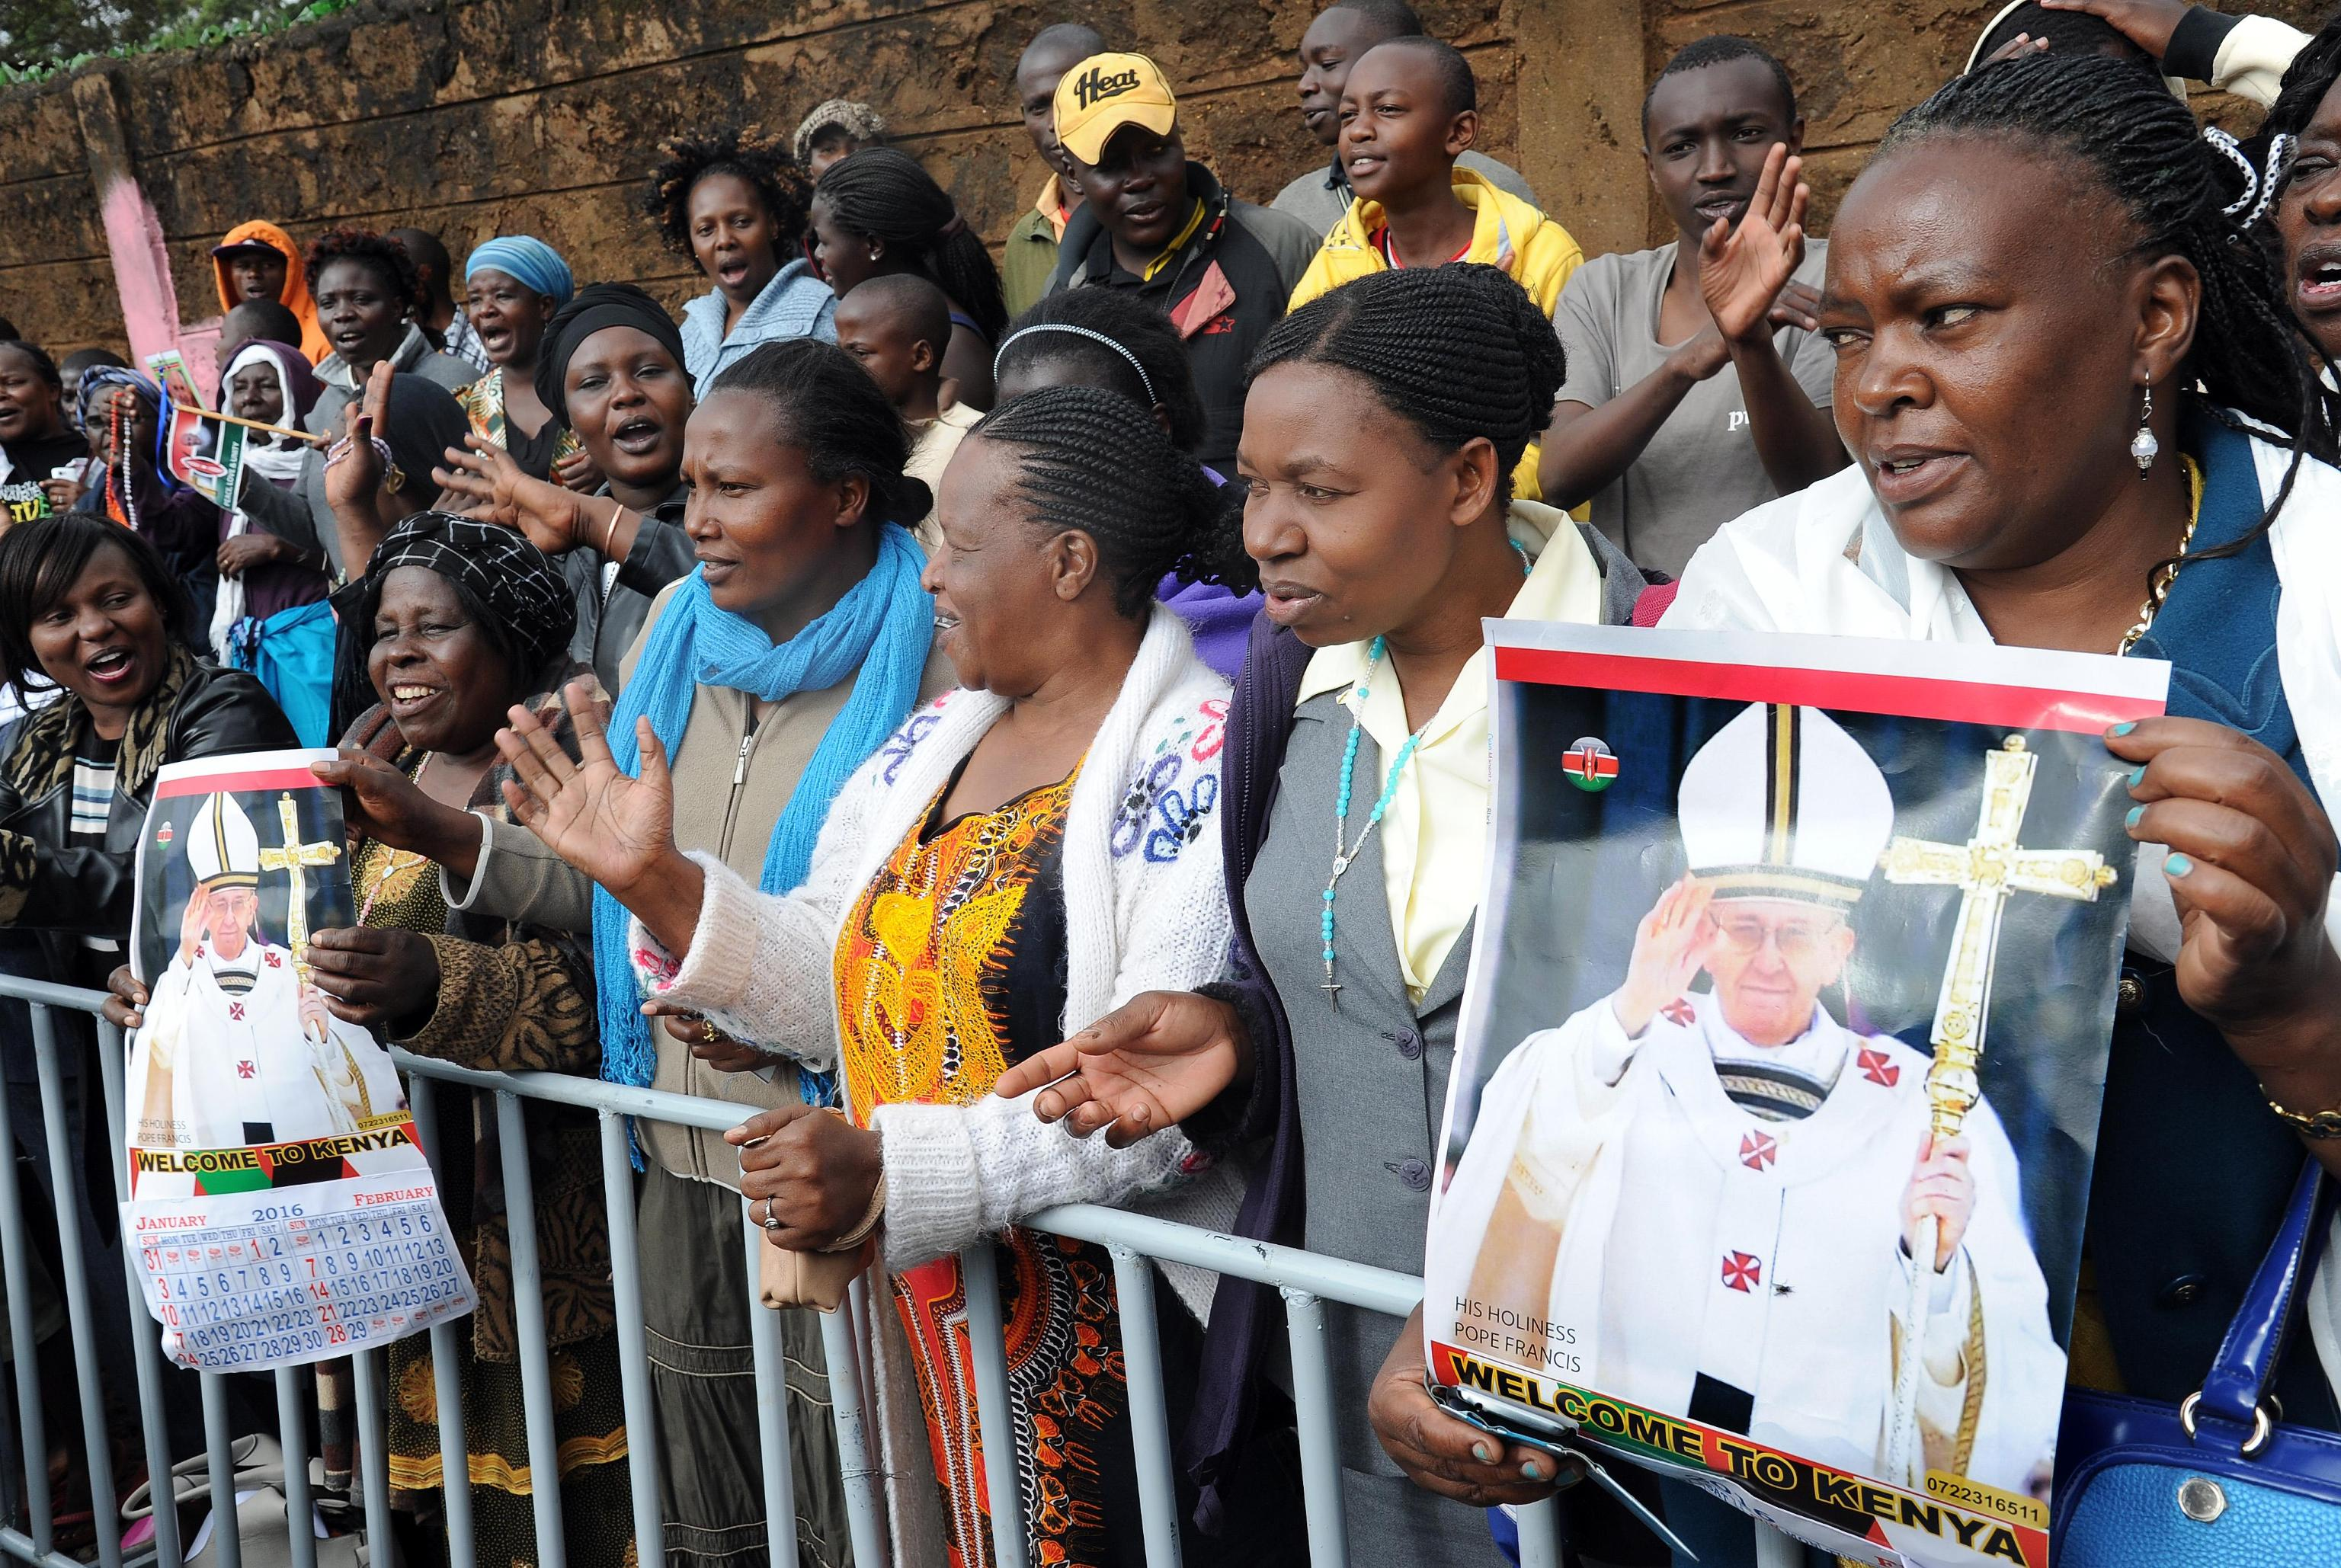 People wait for the visit of Pope Francis in the Kangemi neighborhood in Nairobi